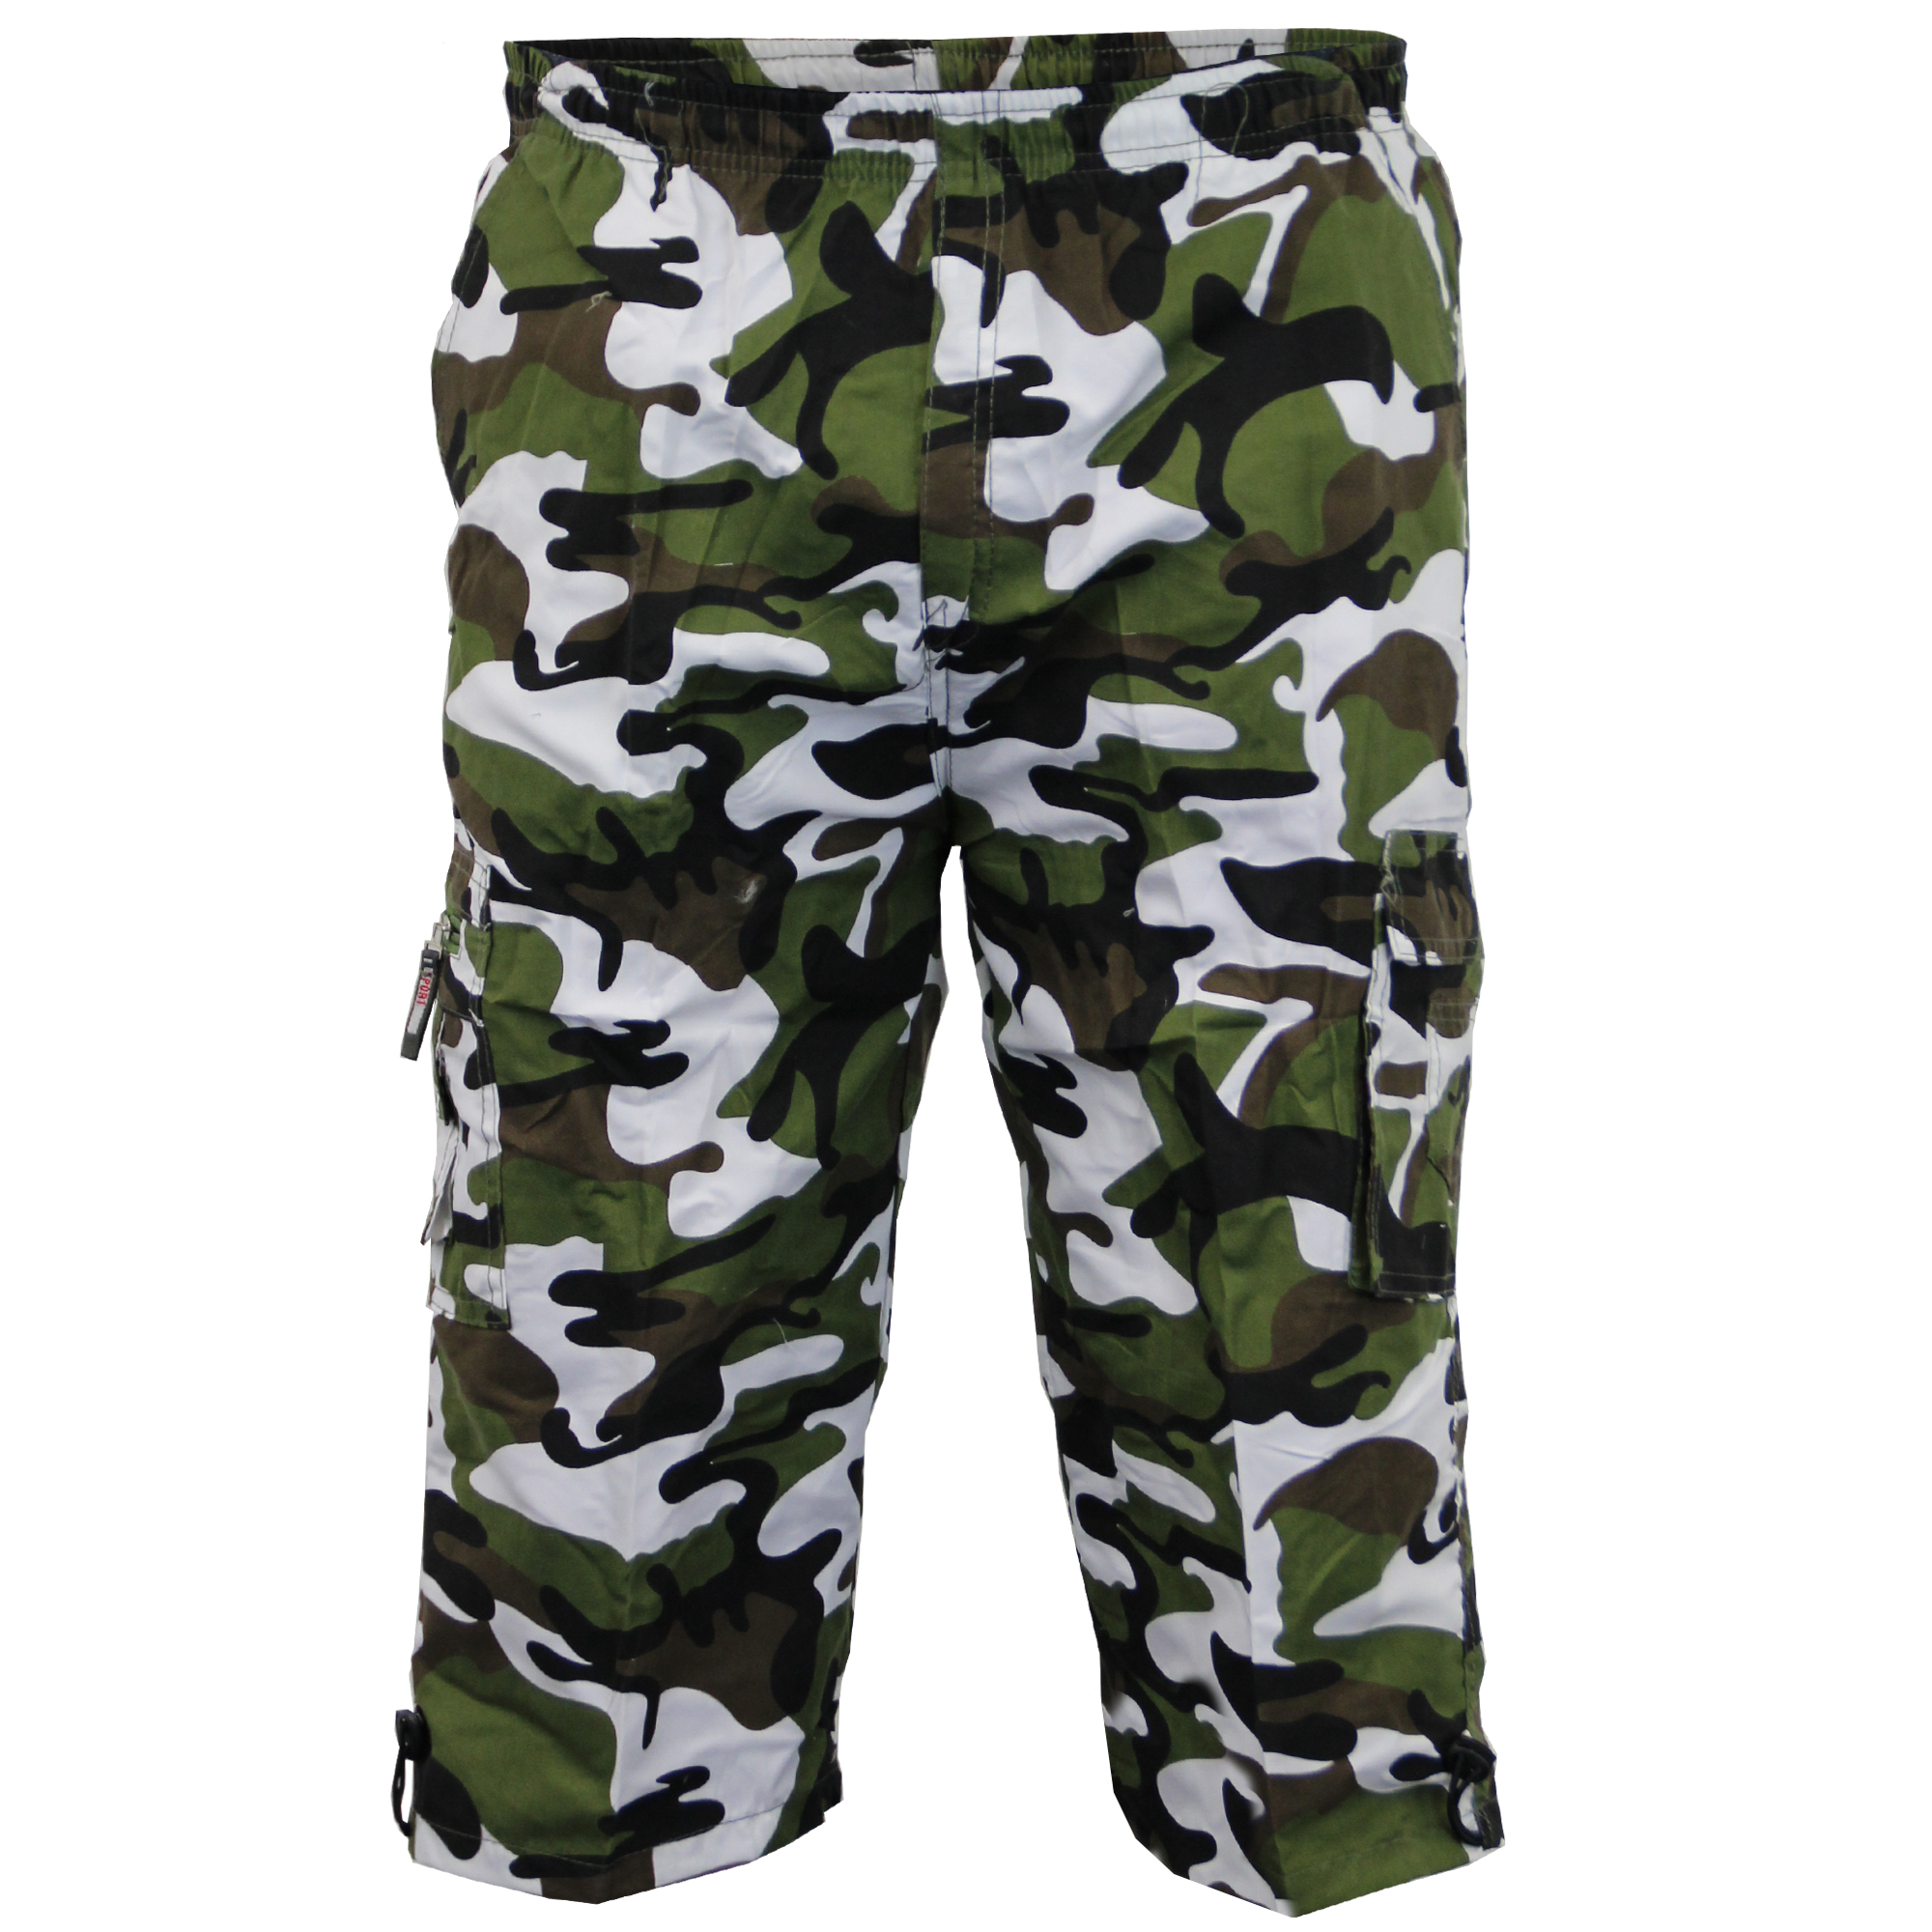 Mens-Camouflage-Combat-Cargo-Shorts-3-4-Length-Army-Military-Sports-Summer-New thumbnail 2